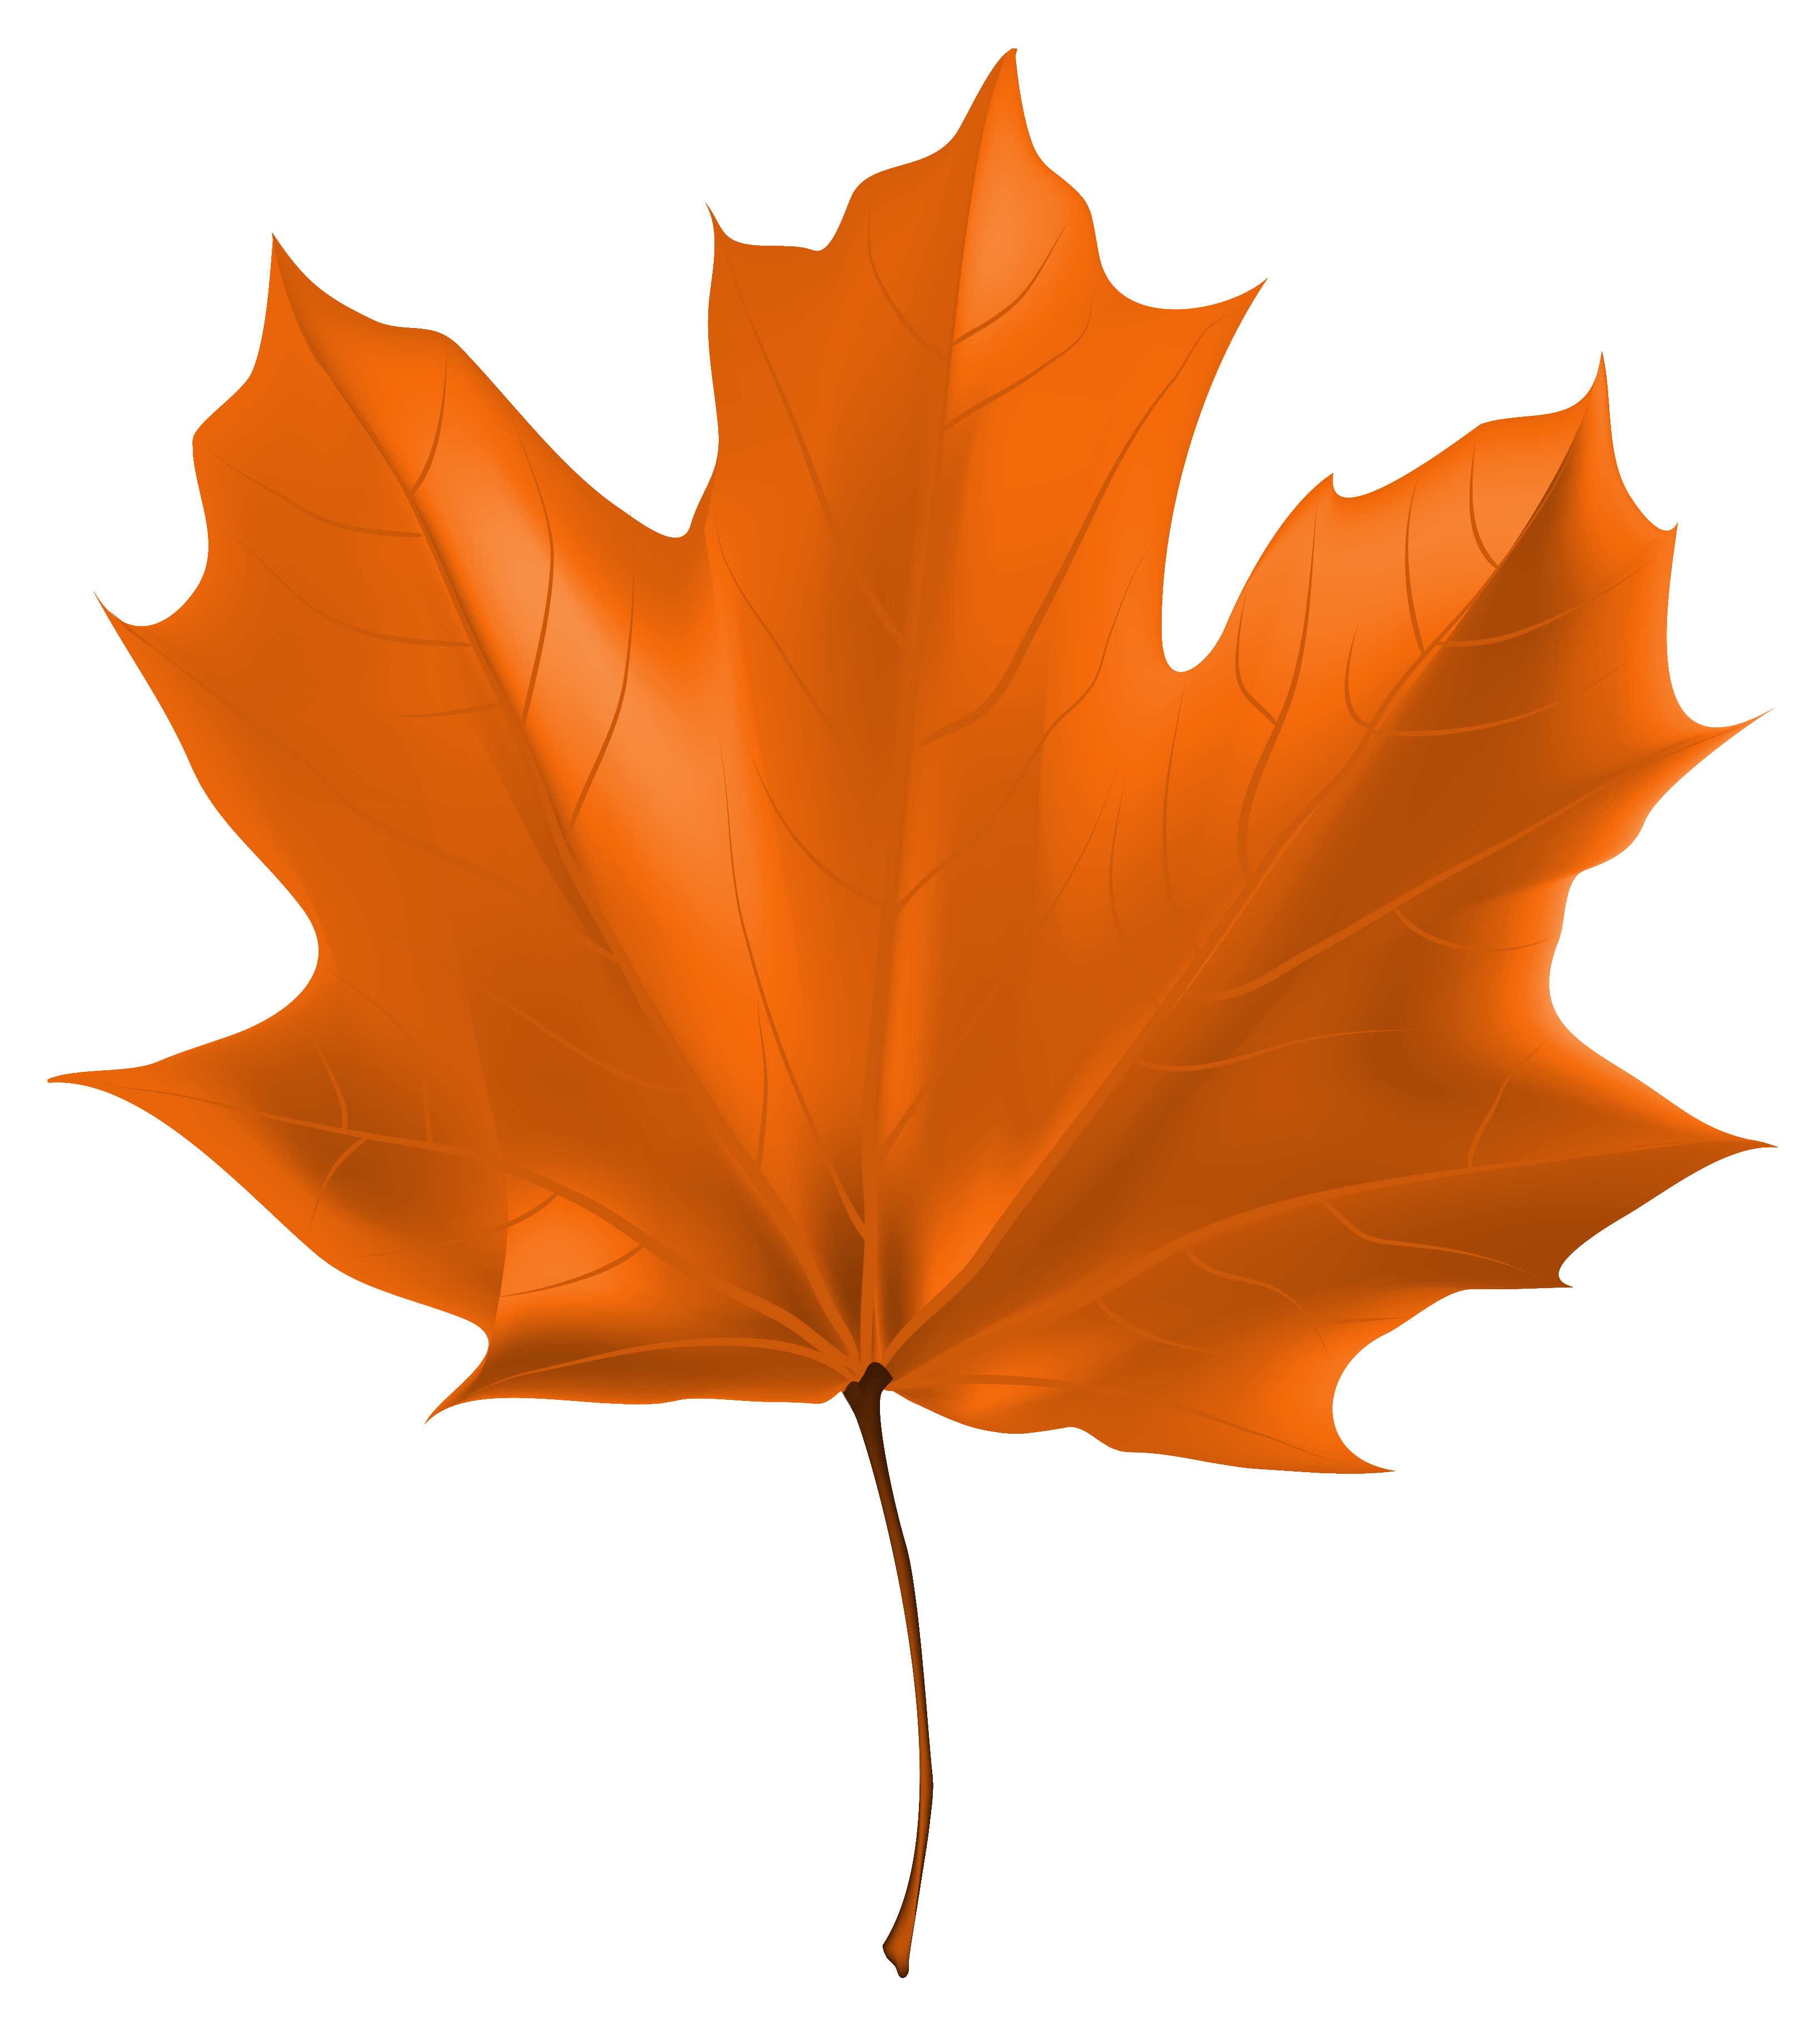 Fall leaf png. Beautiful autumn clipart image